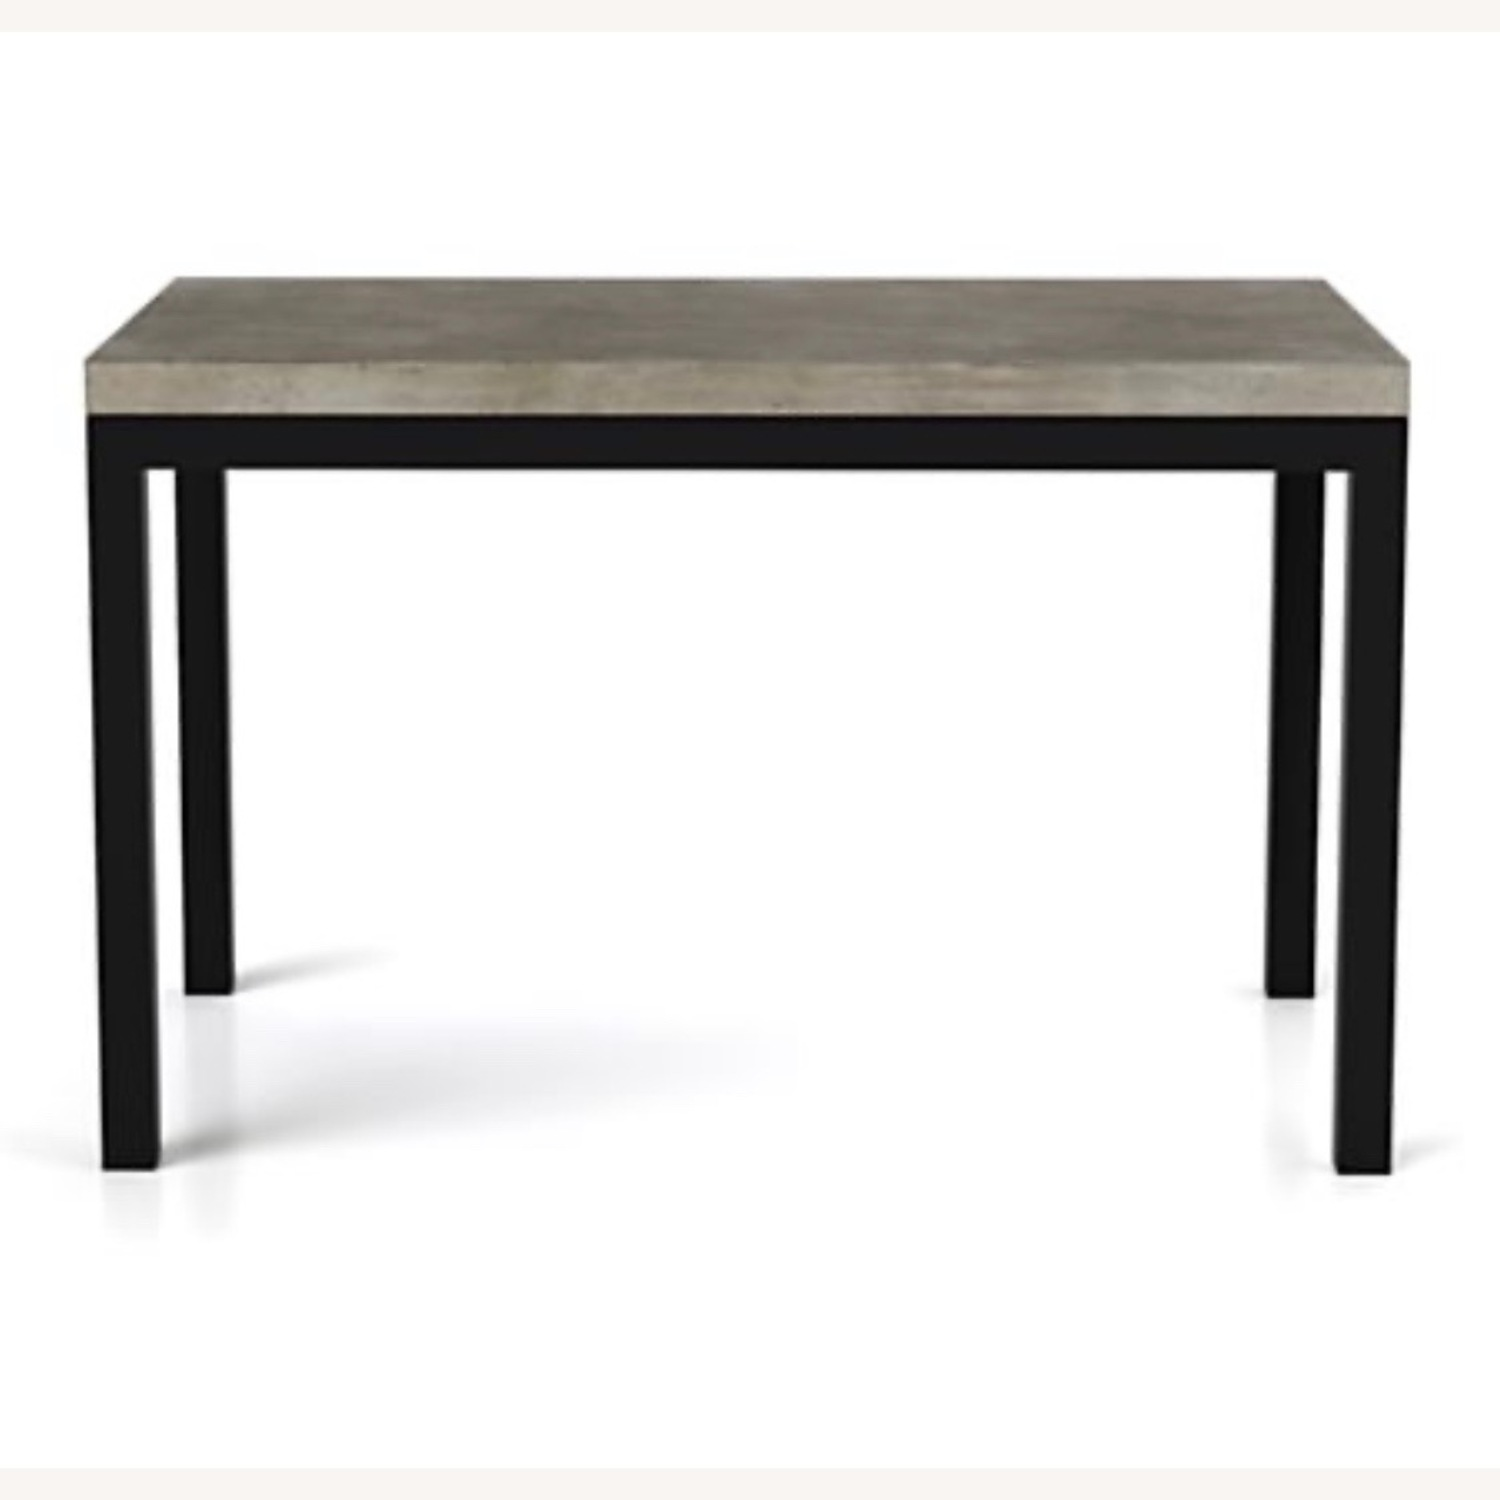 Crate & Barrel 2 Concrete Dining Tables - image-15